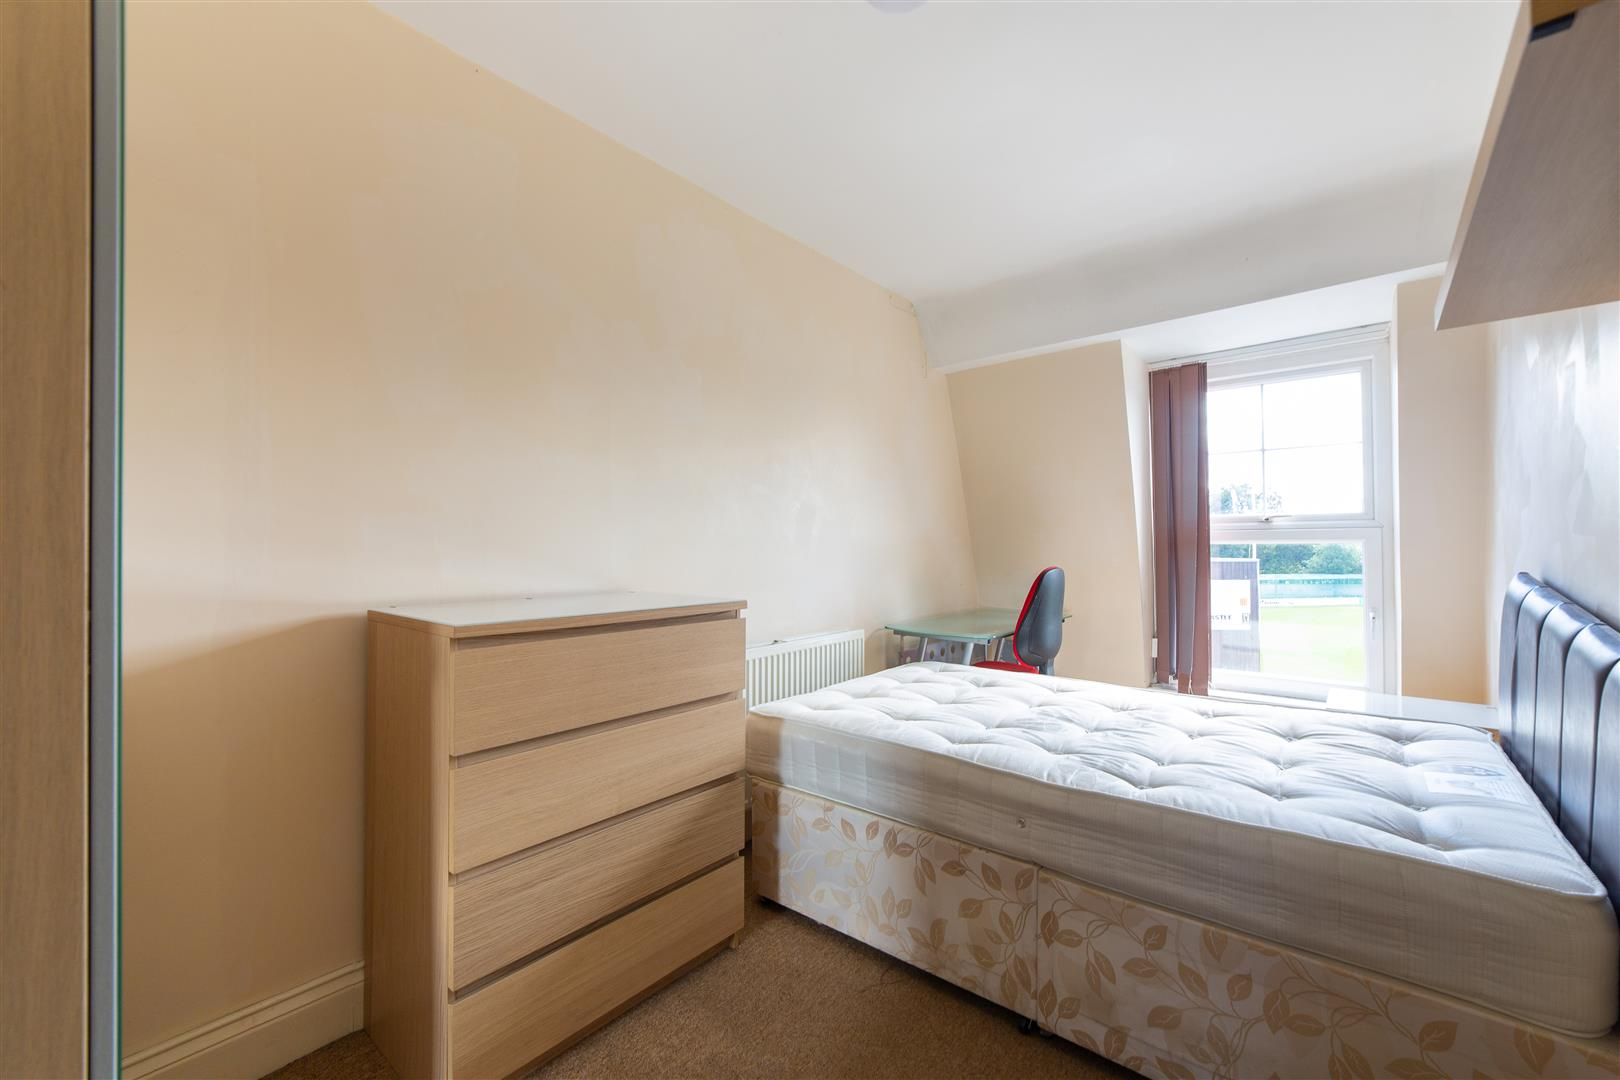 8 bed terraced house to rent in Newcastle Upon Tyne, NE2 1JS  - Property Image 15